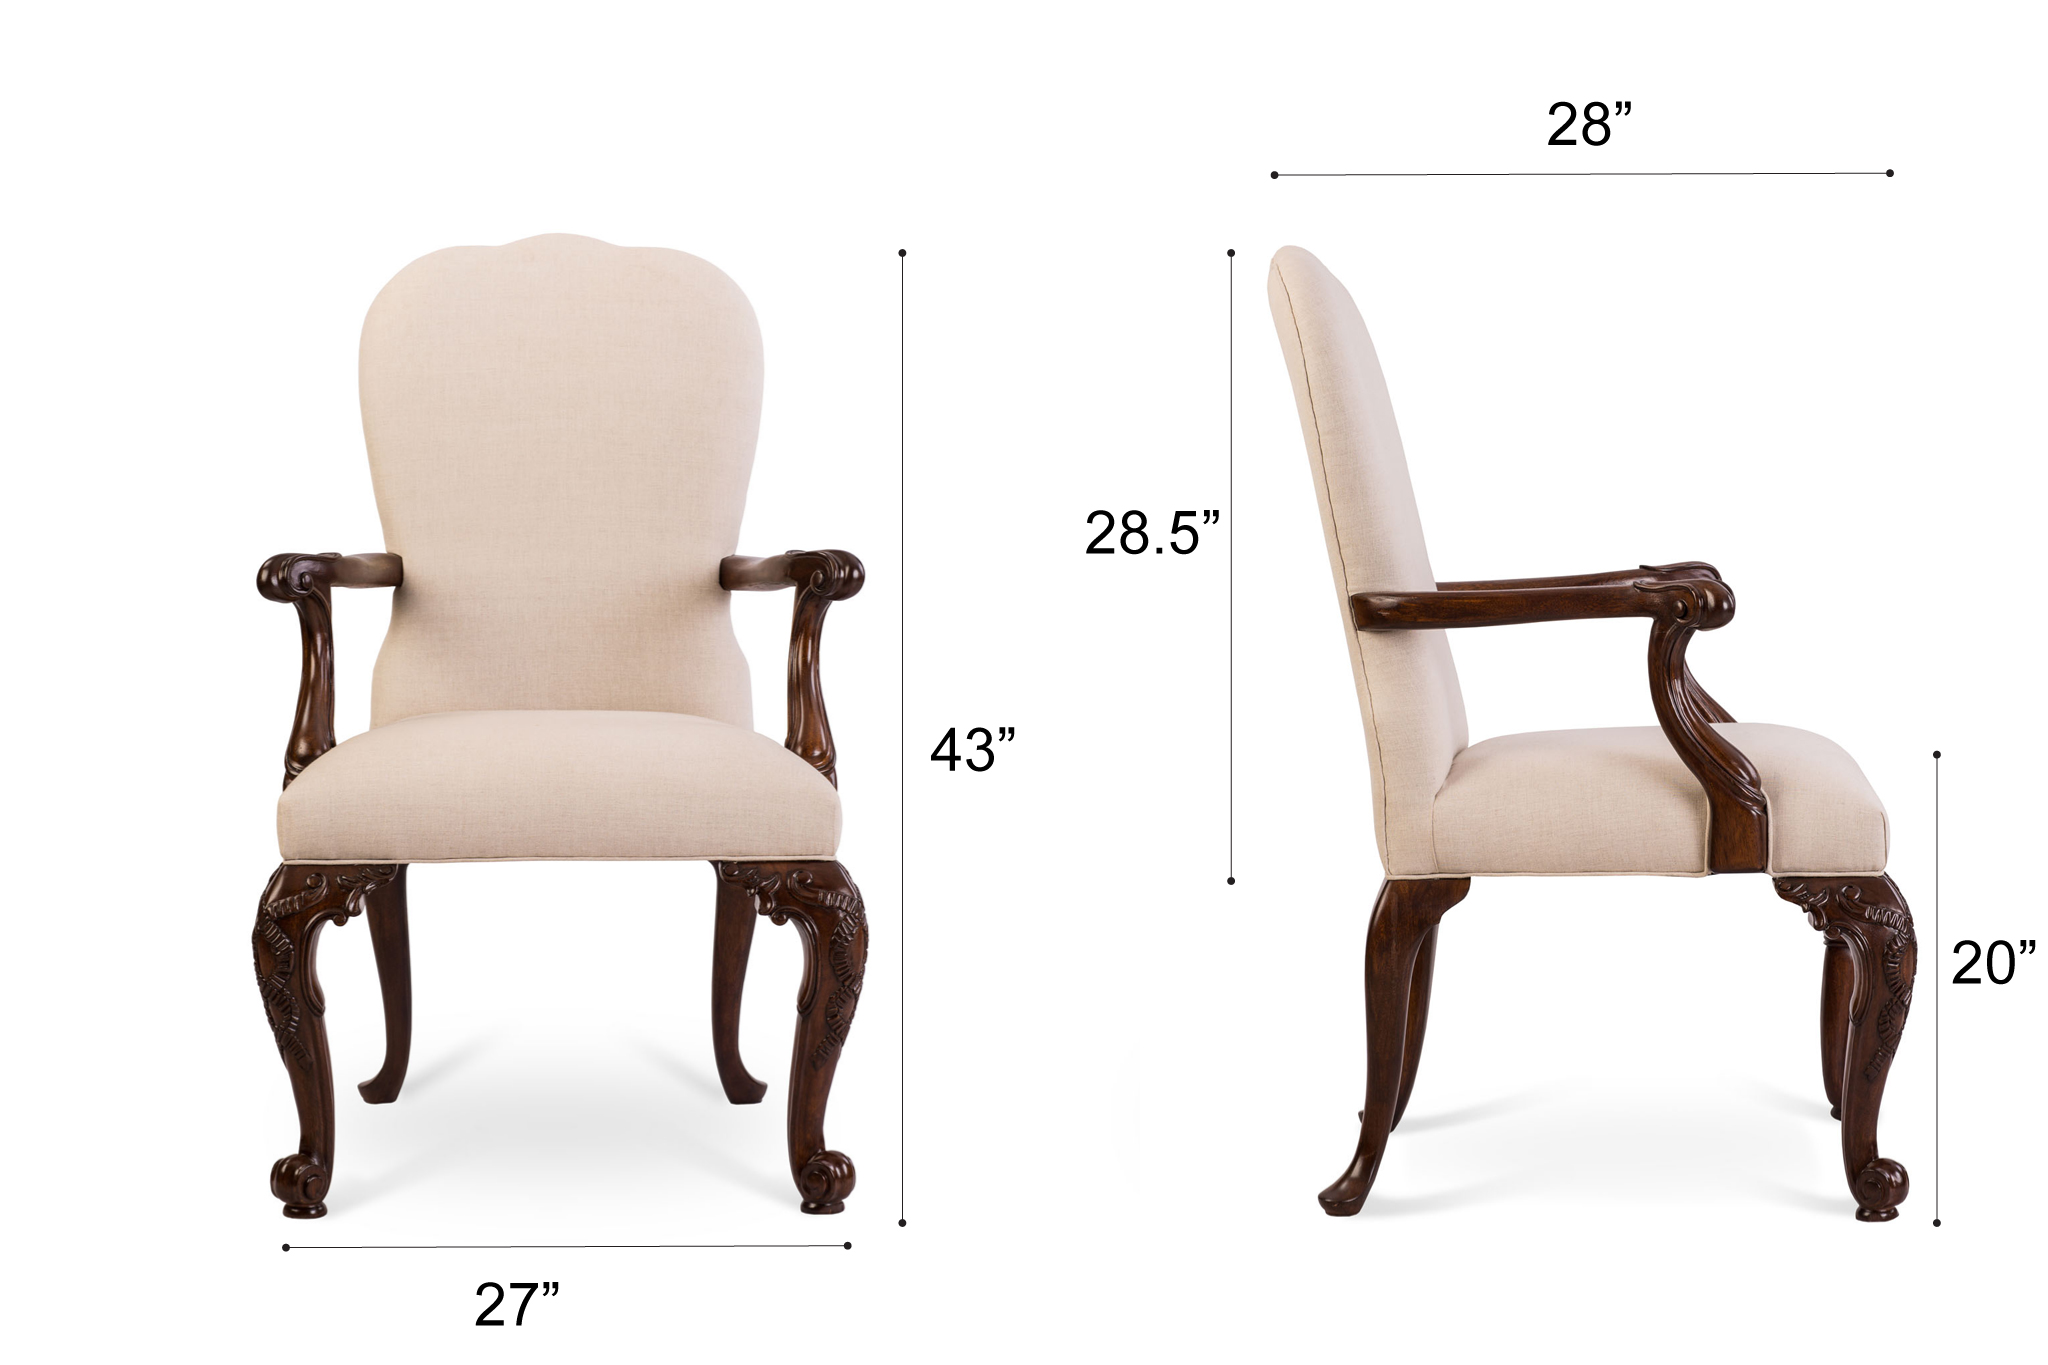 Dowel Furniture Marie Armchair Dimensions